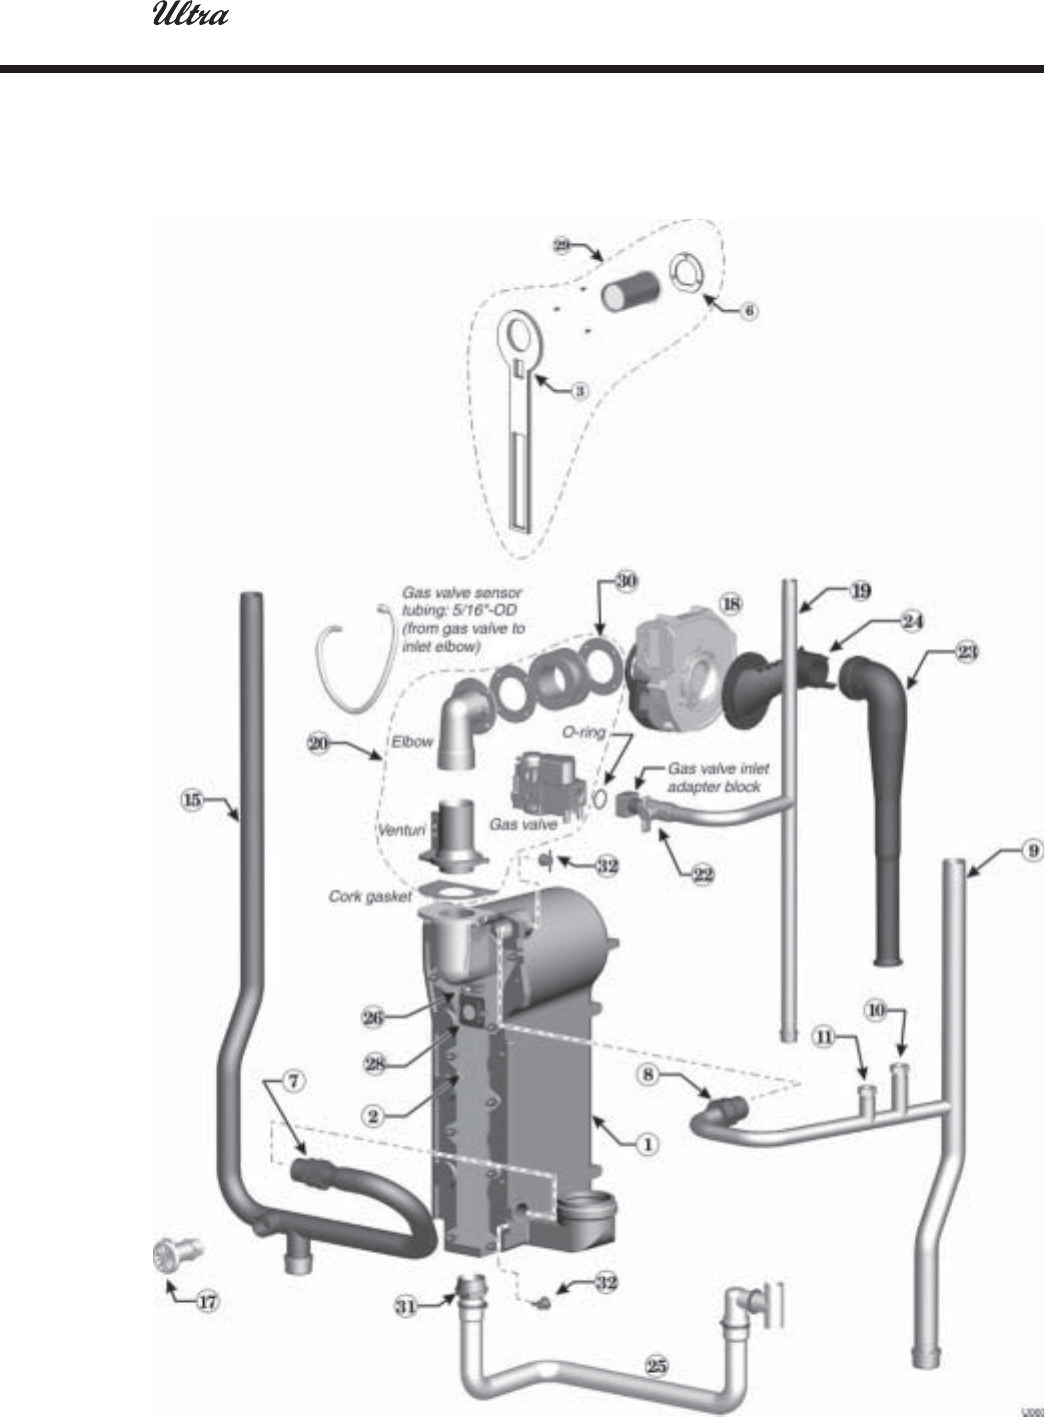 Page 39 of Weil-McLain Water Heater 80 User Guide